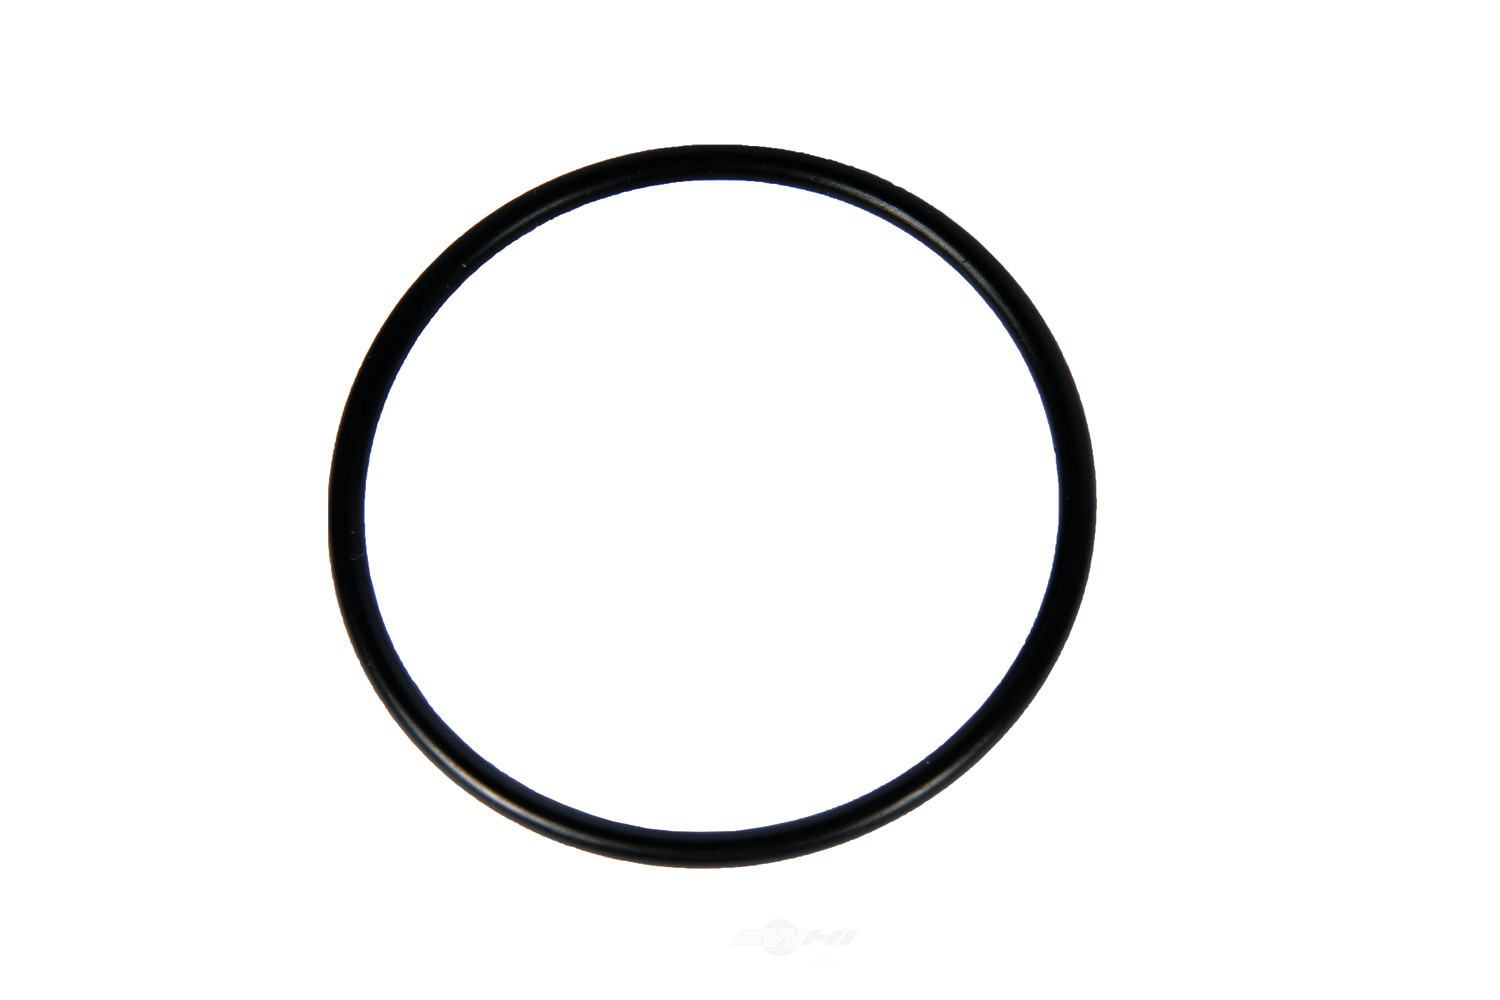 ACDELCO OE SERVICE - Brake Master Cylinder Seal - DCB 95977364